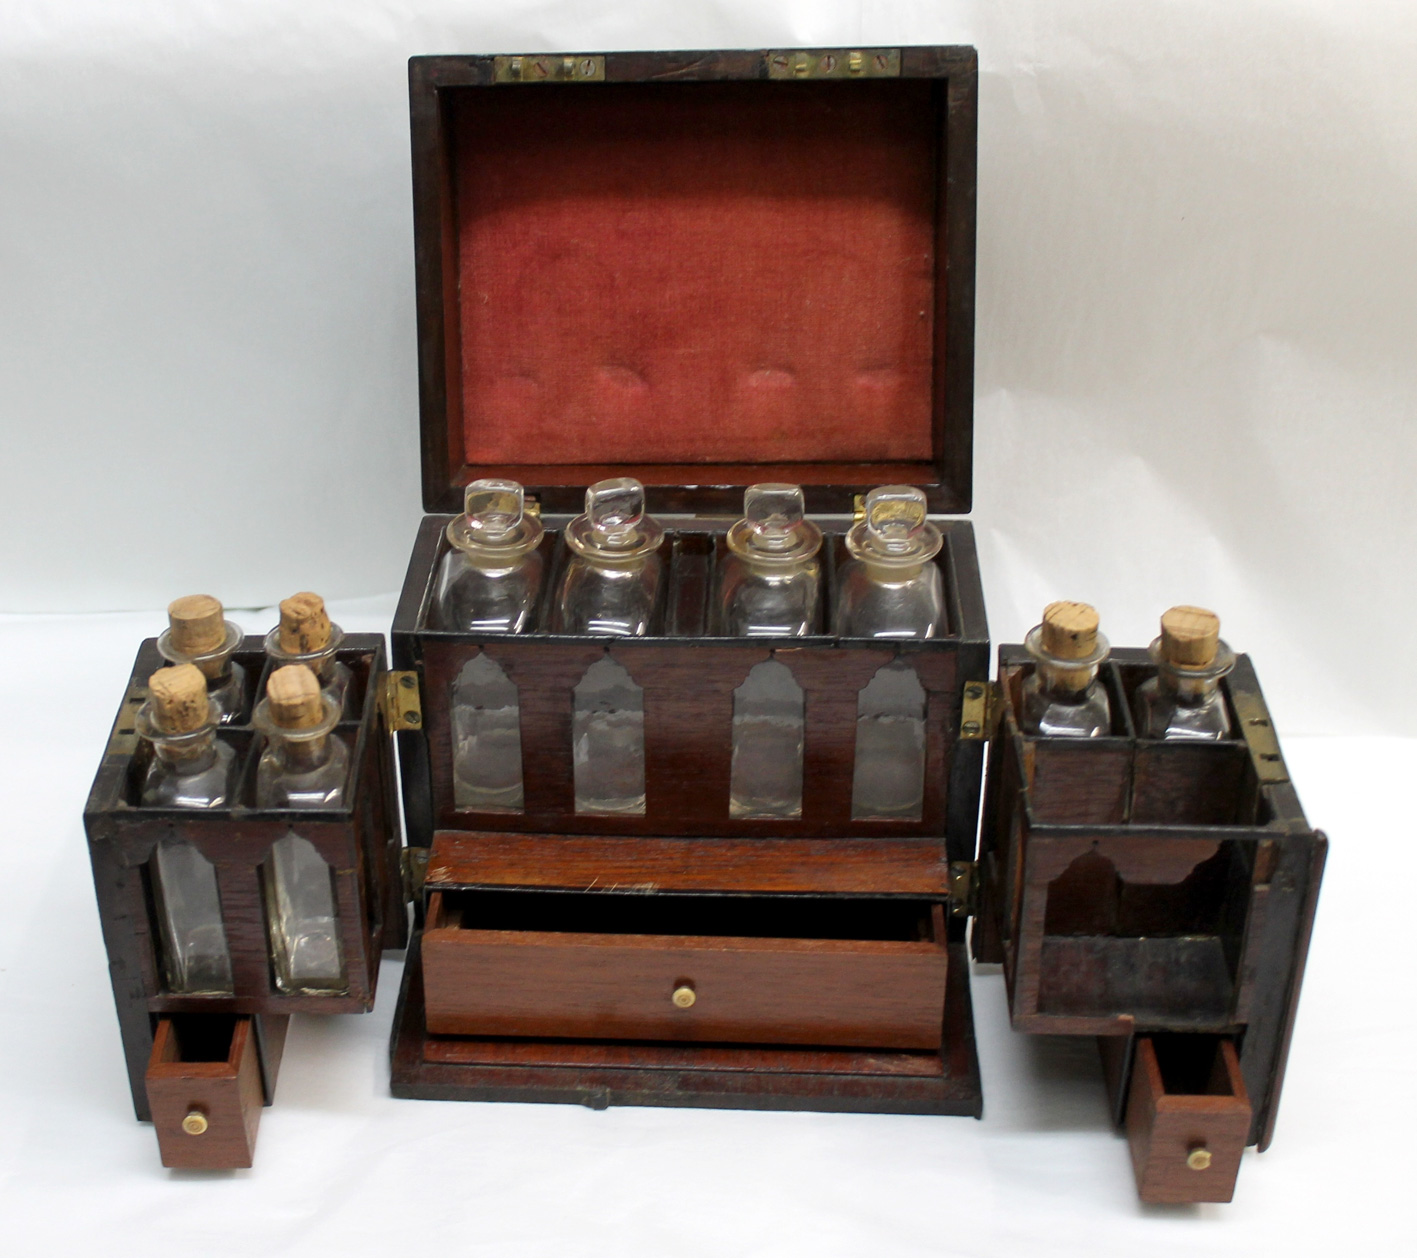 Medicine chest for use in the home, England early 19th century